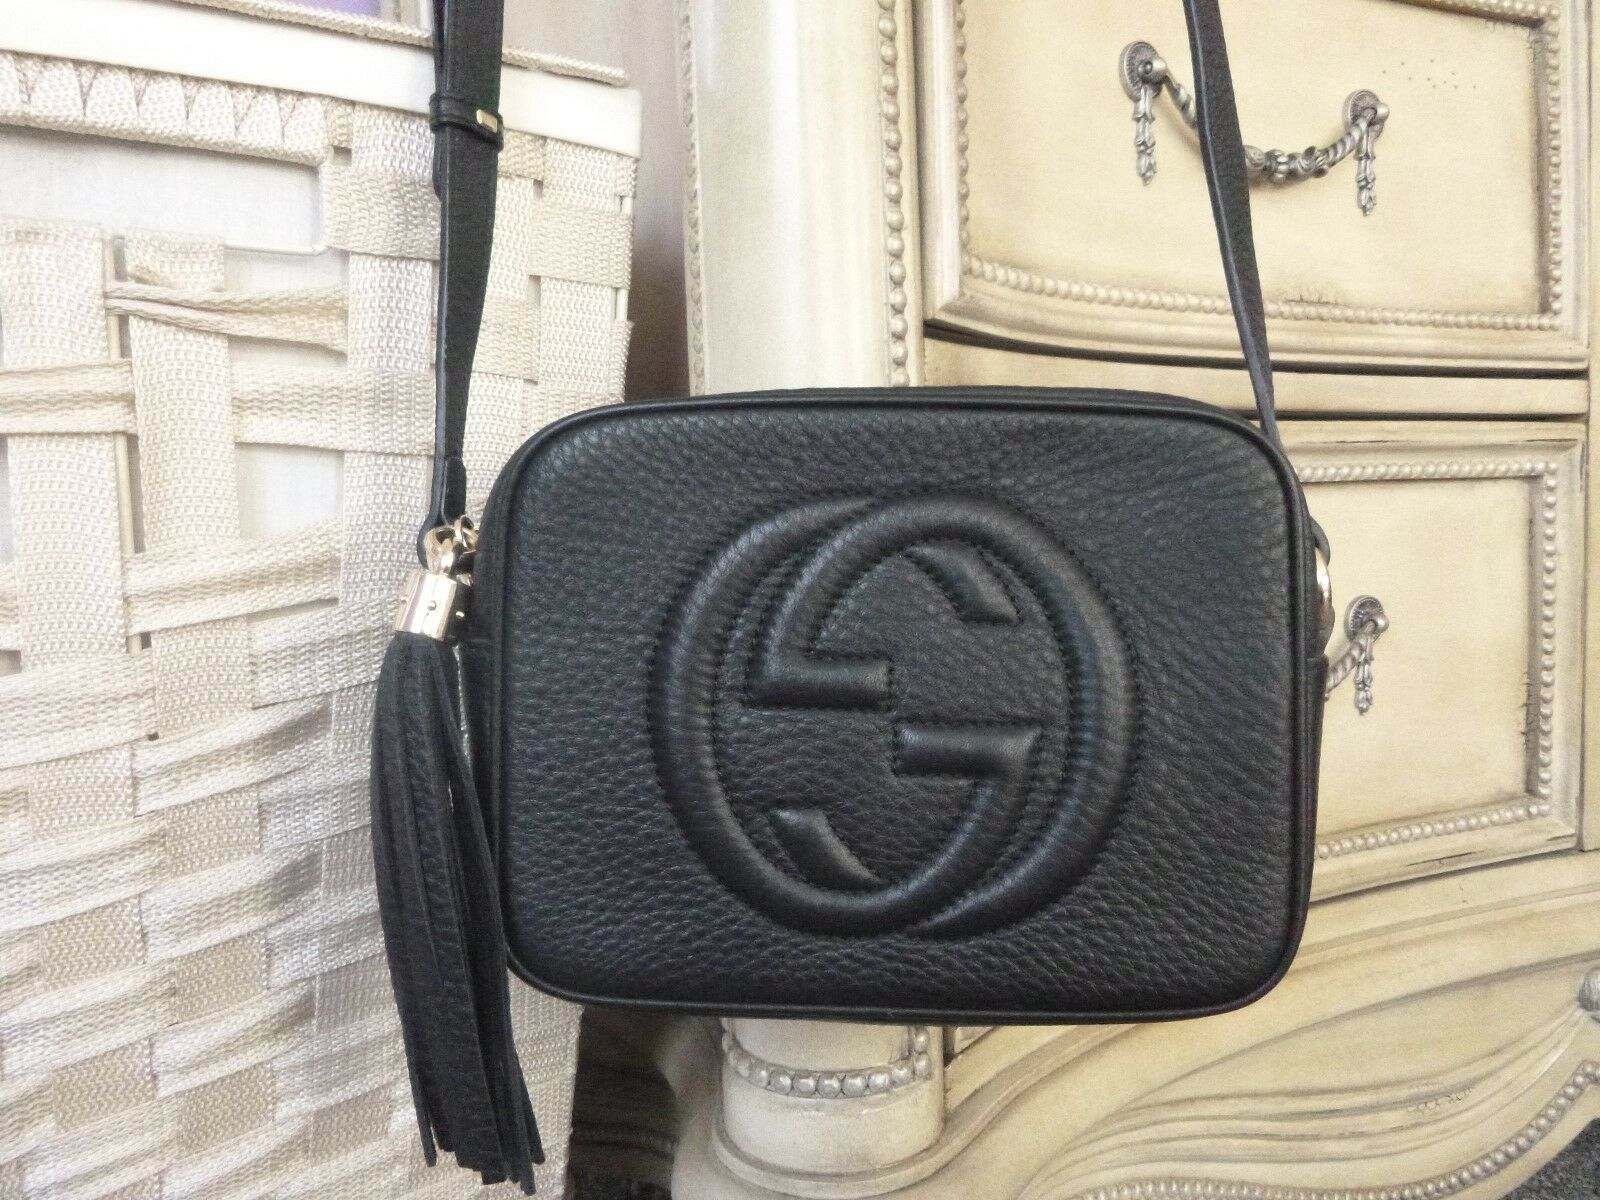 dcd76a4ad Details about AUTHENTIC GUCCI SOHO DISCO BAG - BLACK in 2019 | Gucci ...